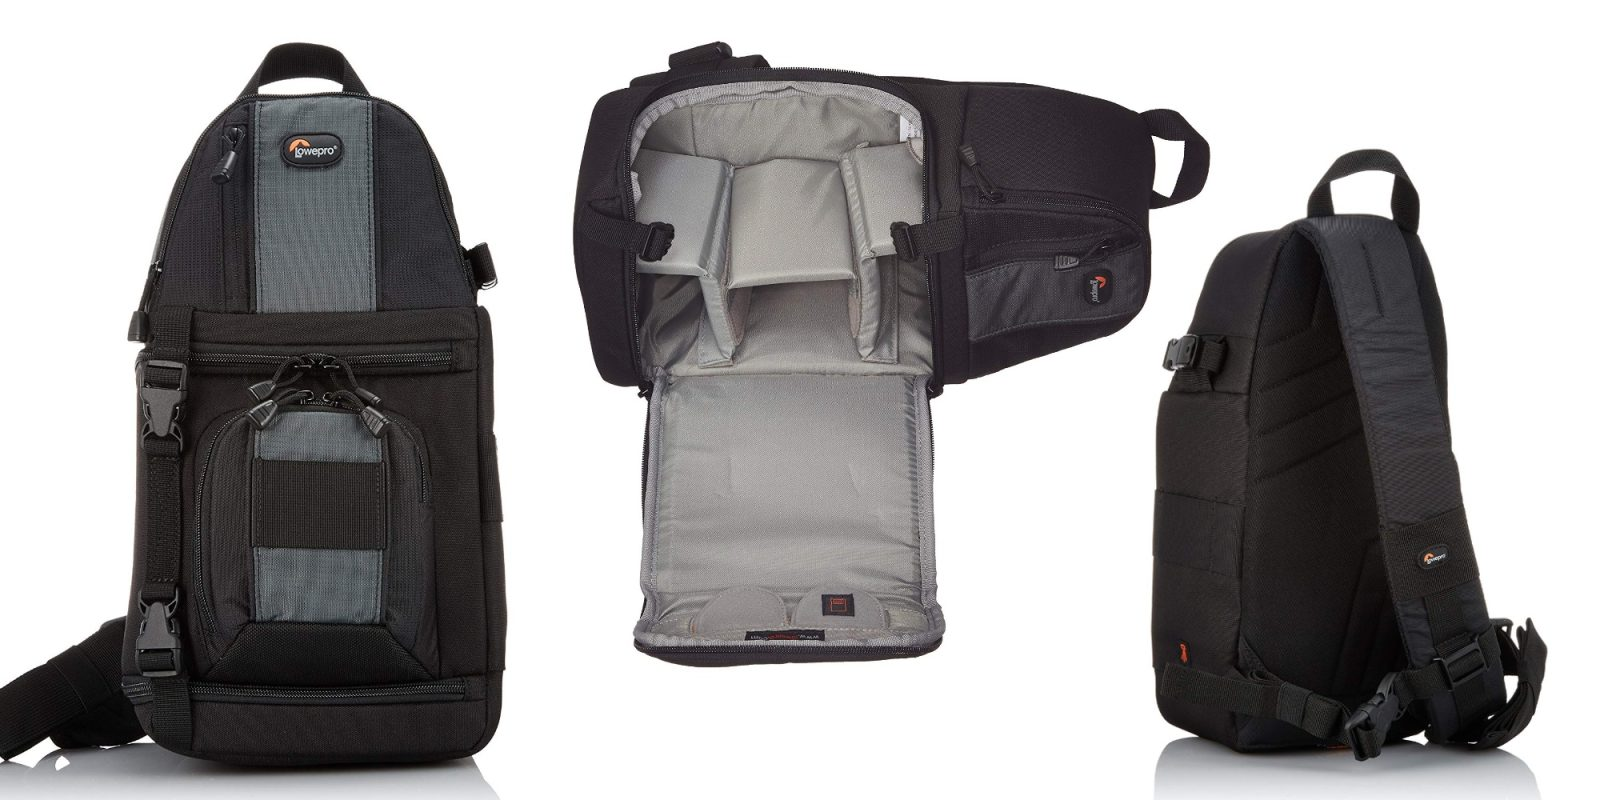 Save 30% on Lowepro's SlingShot 102 AW Camera Bag at an all-time low of $35